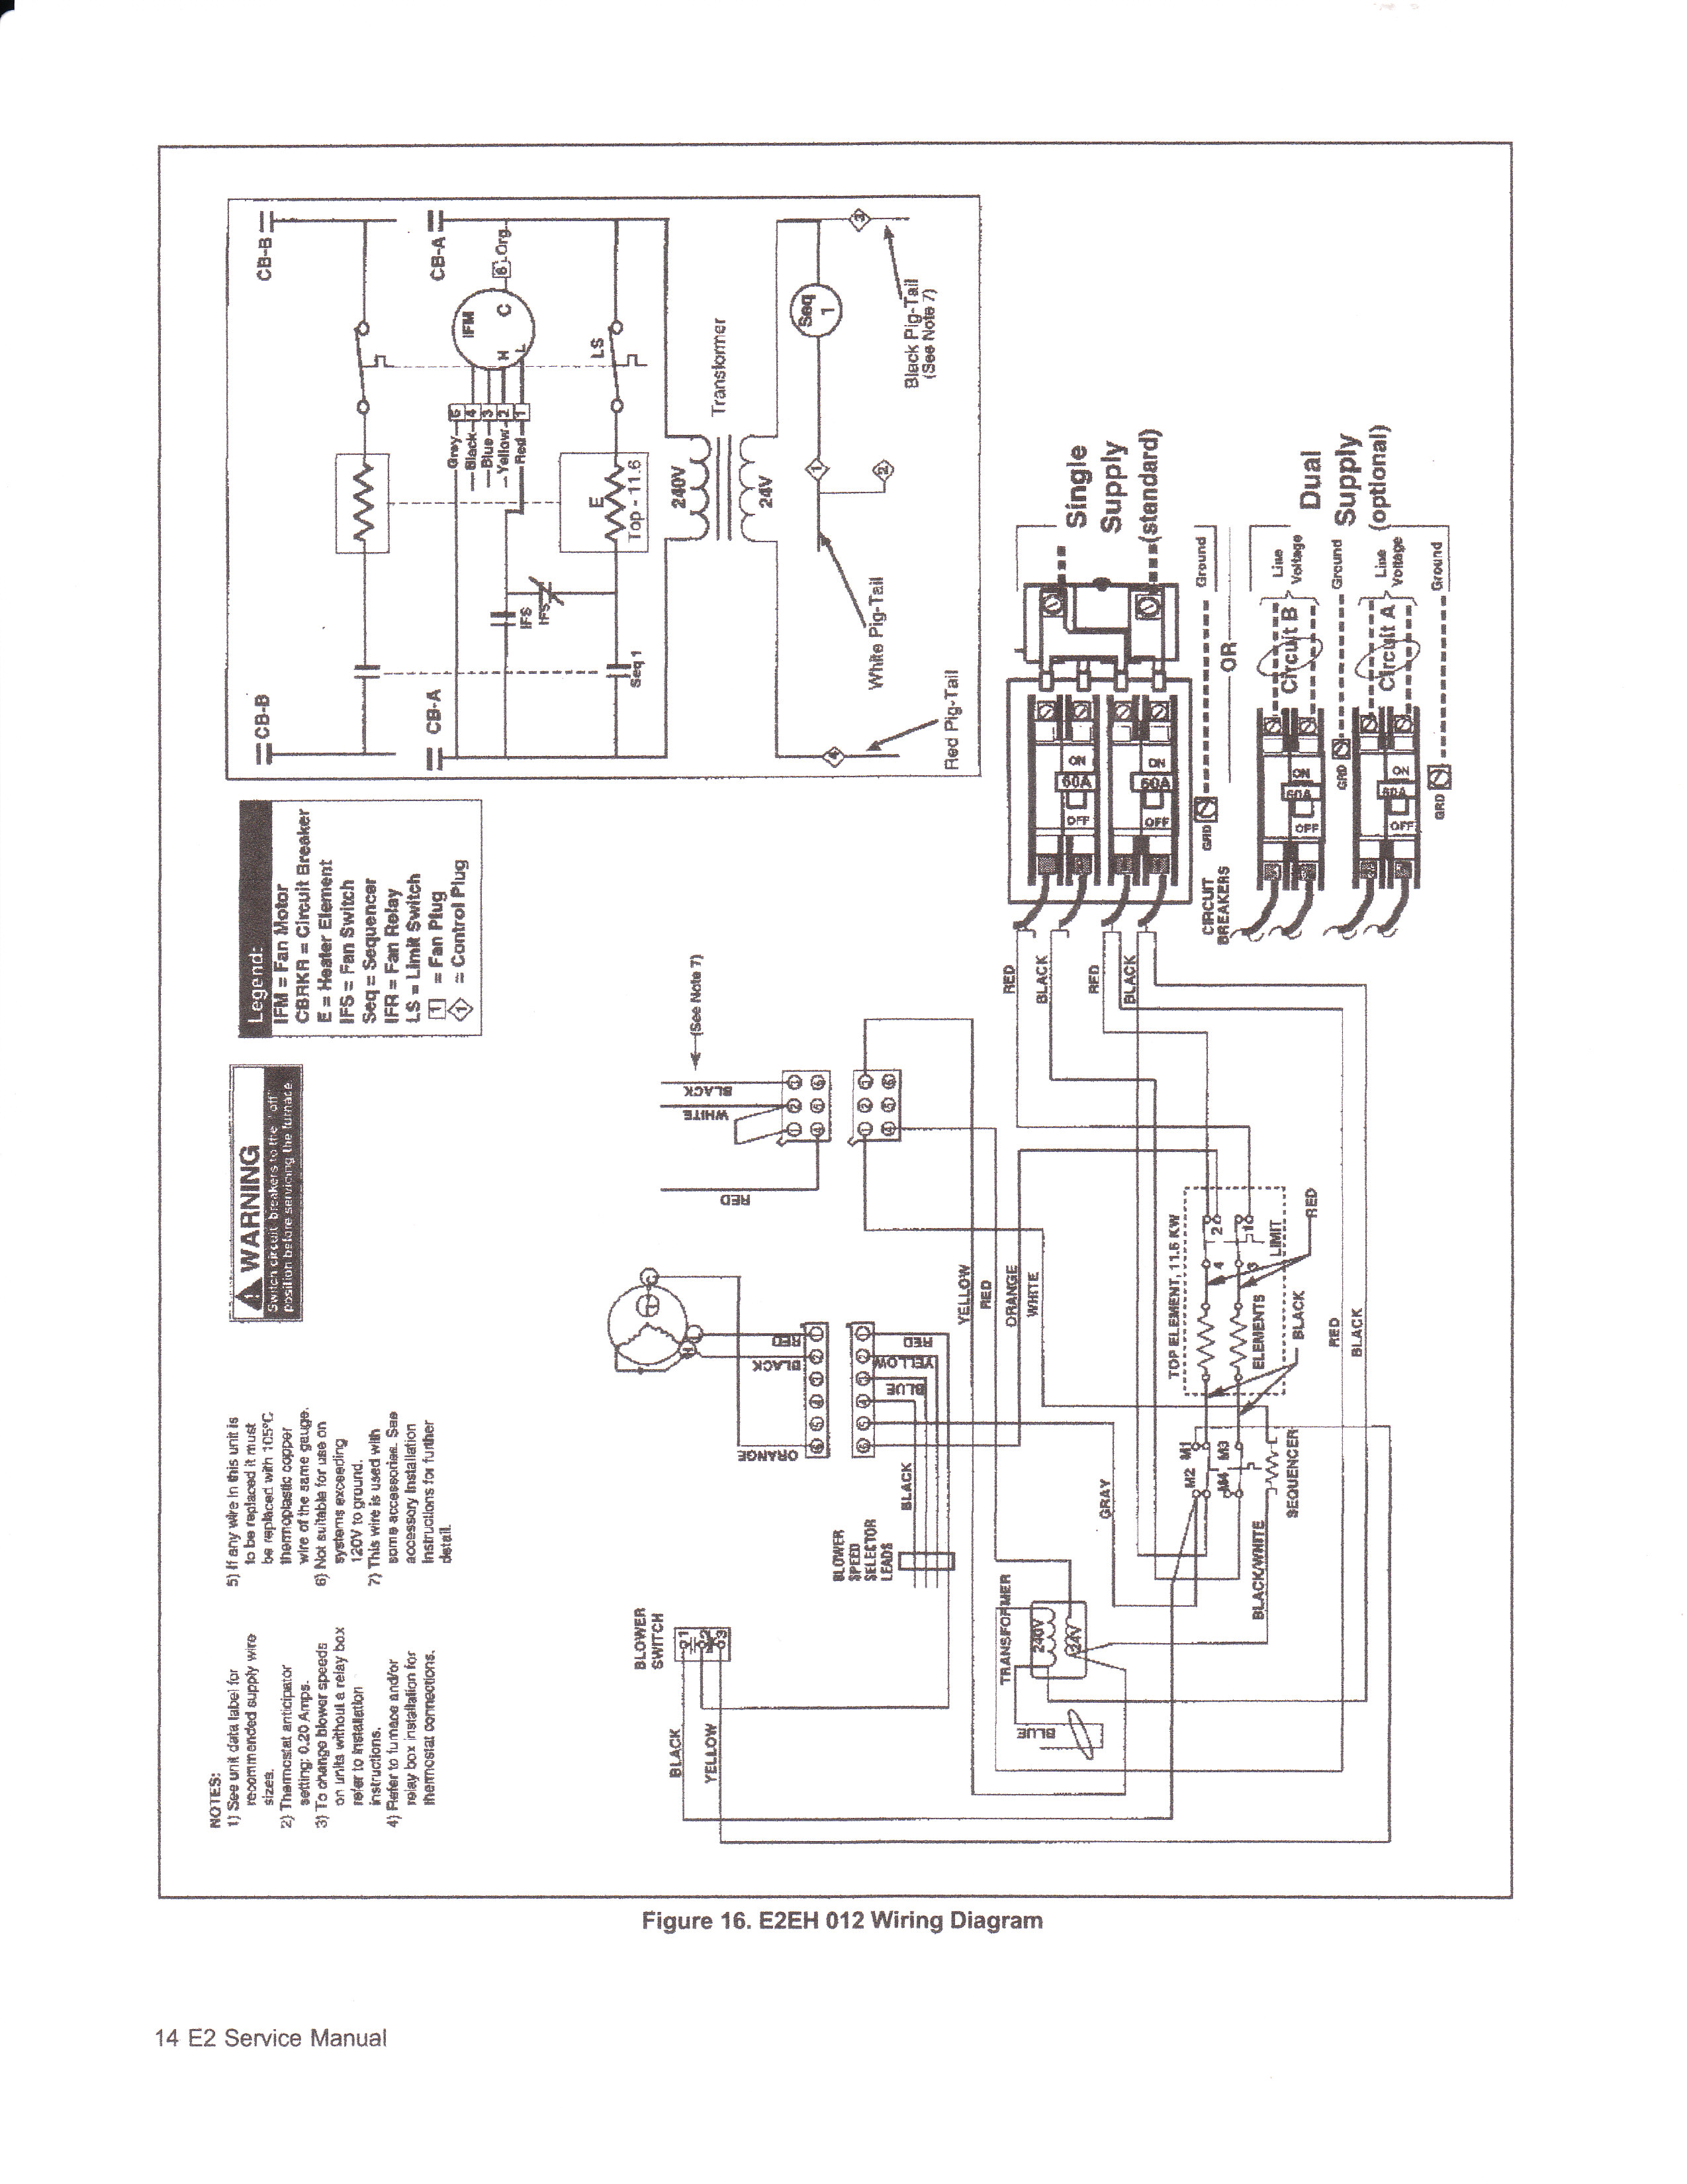 coleman mobile home furnace wiring diagram for a three way switch with dimmer gas furnaces transformer free download